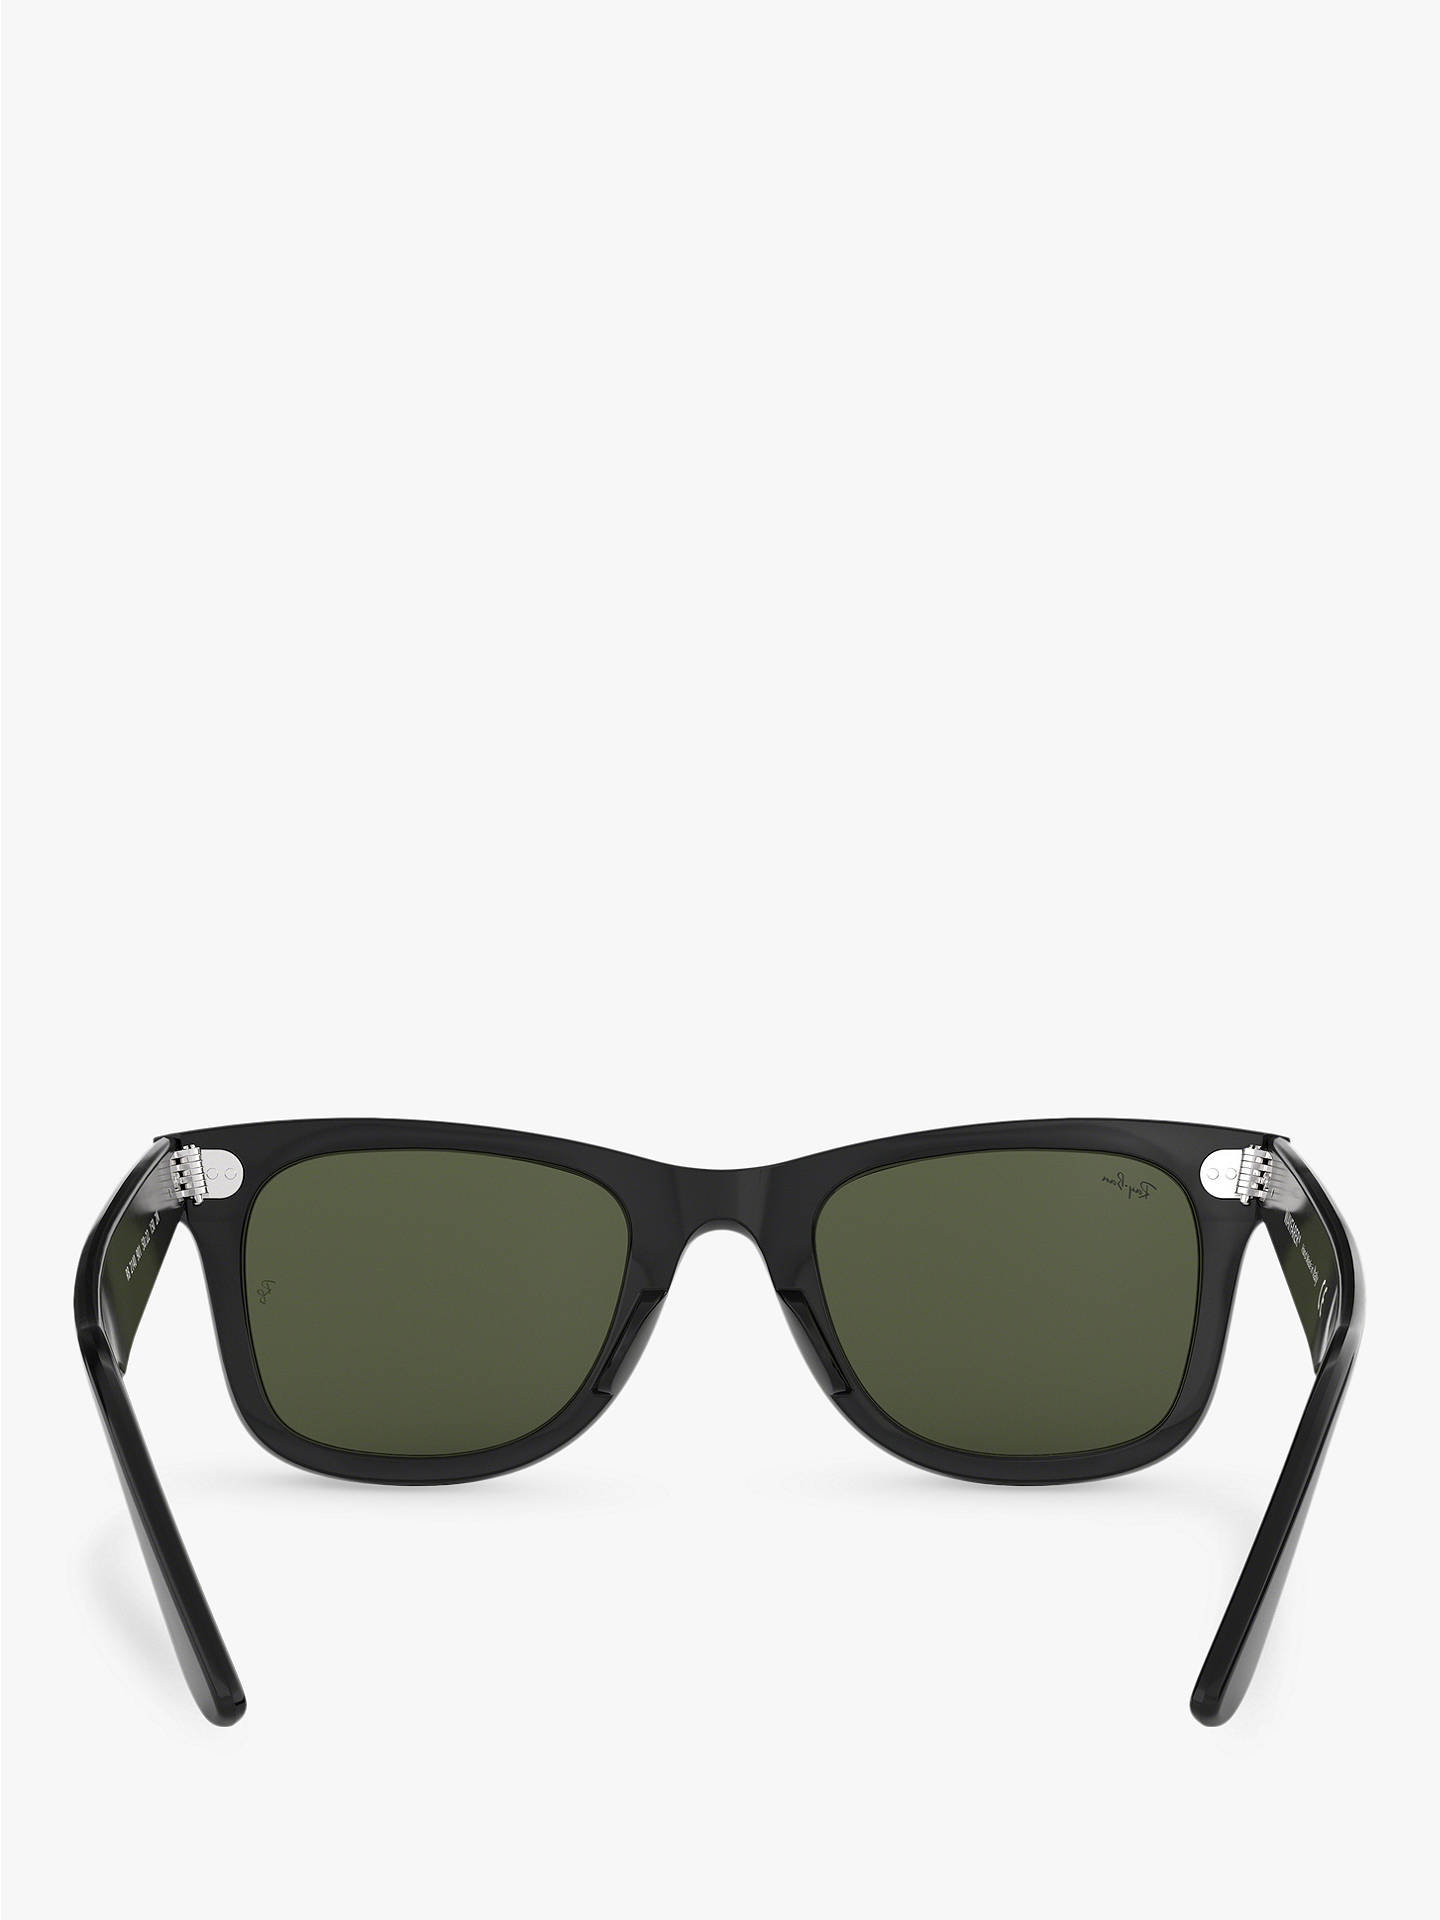 b498c7d0e0 Ray-Ban RB2140 Unisex New Wayfarer Sunglasses at John Lewis   Partners